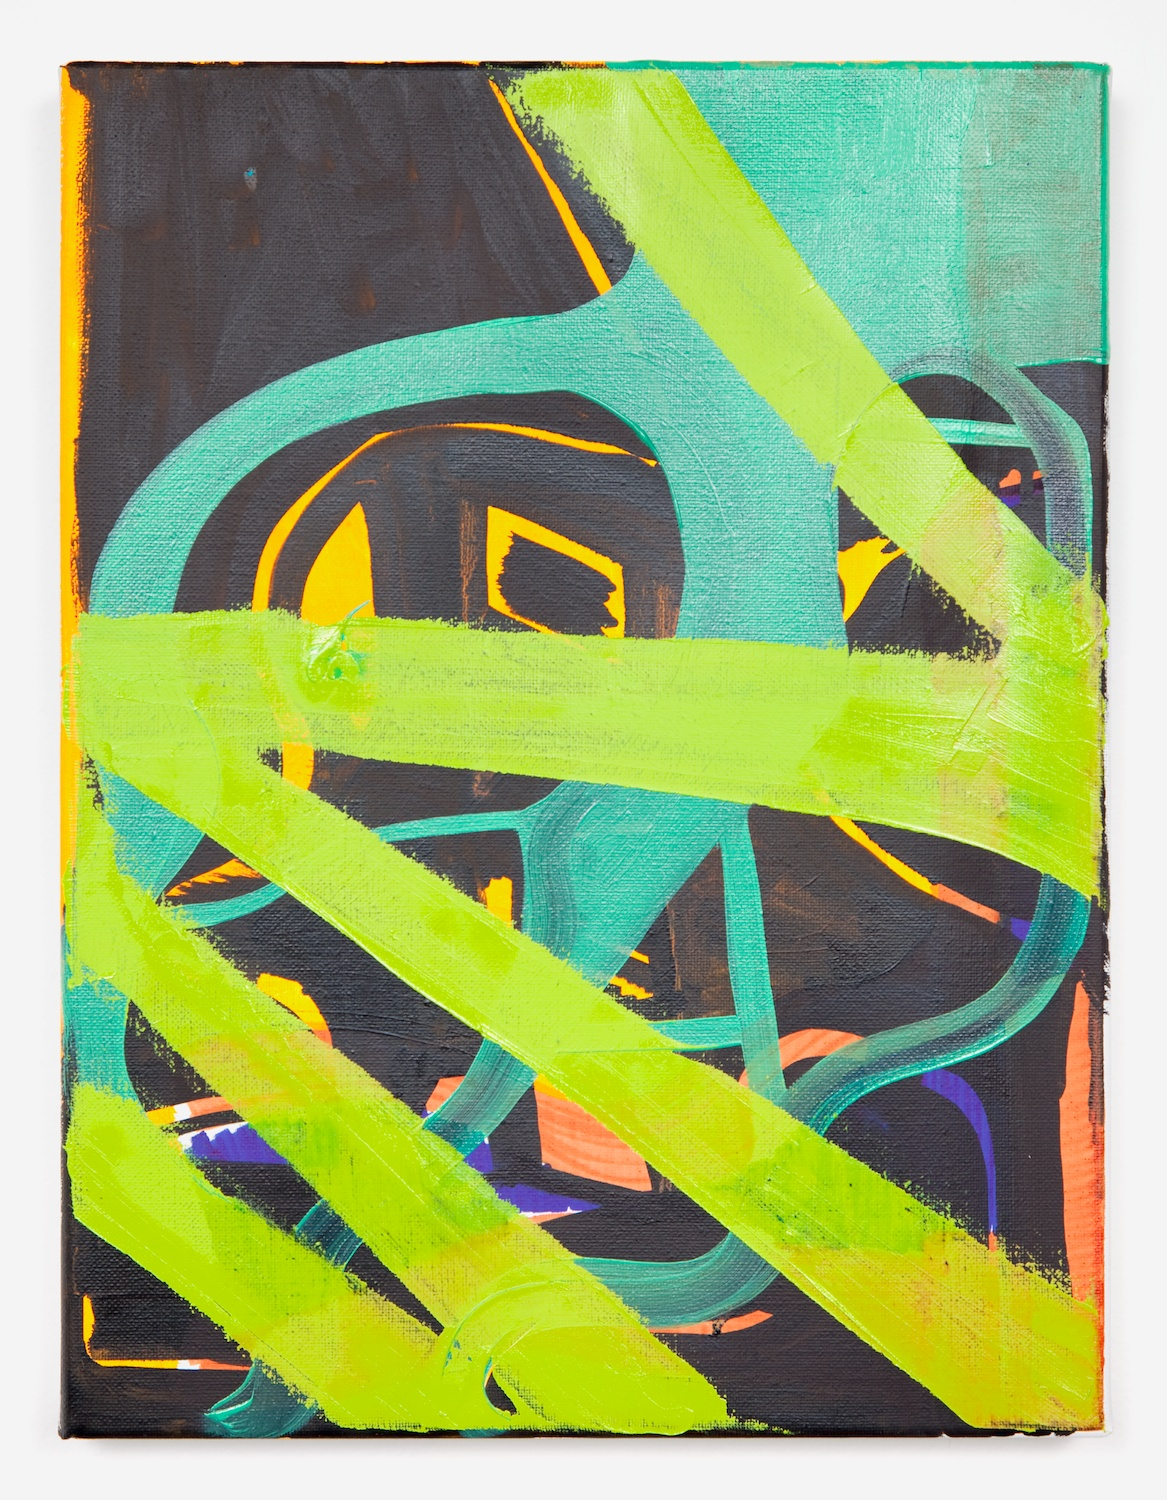 Joanne Greenbaum  Untitled  2011 Oil, acrylic and mixed media on linen 16h x 12w in JG029